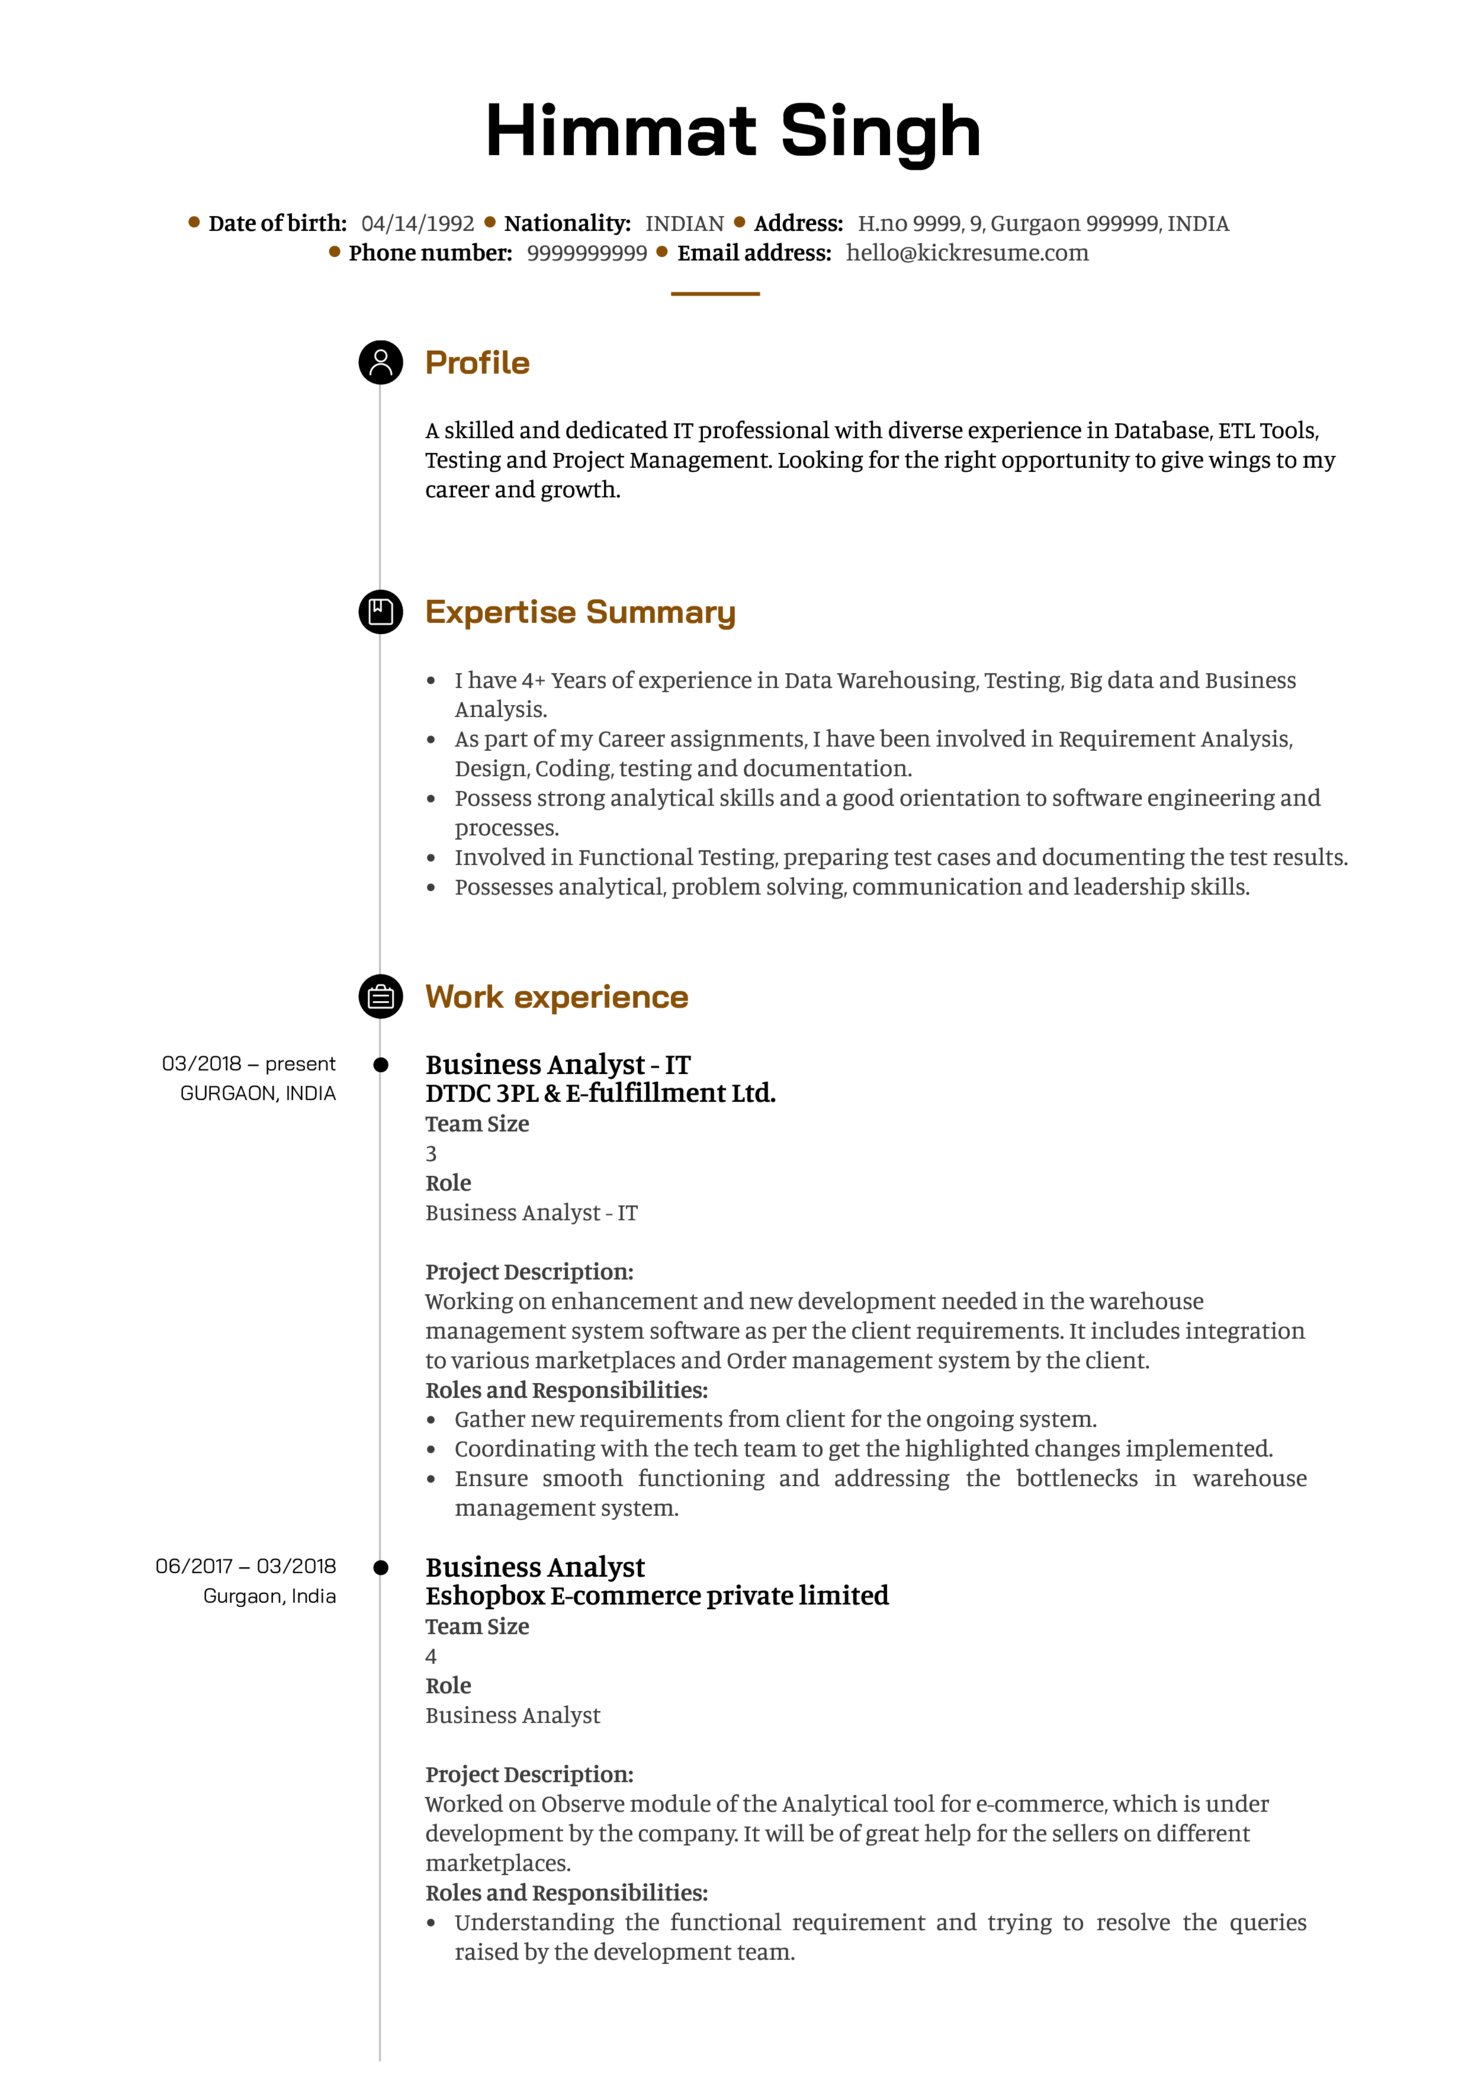 Resume examples by real people dtdc business analyst resume dtdc business analyst resume template friedricerecipe Gallery